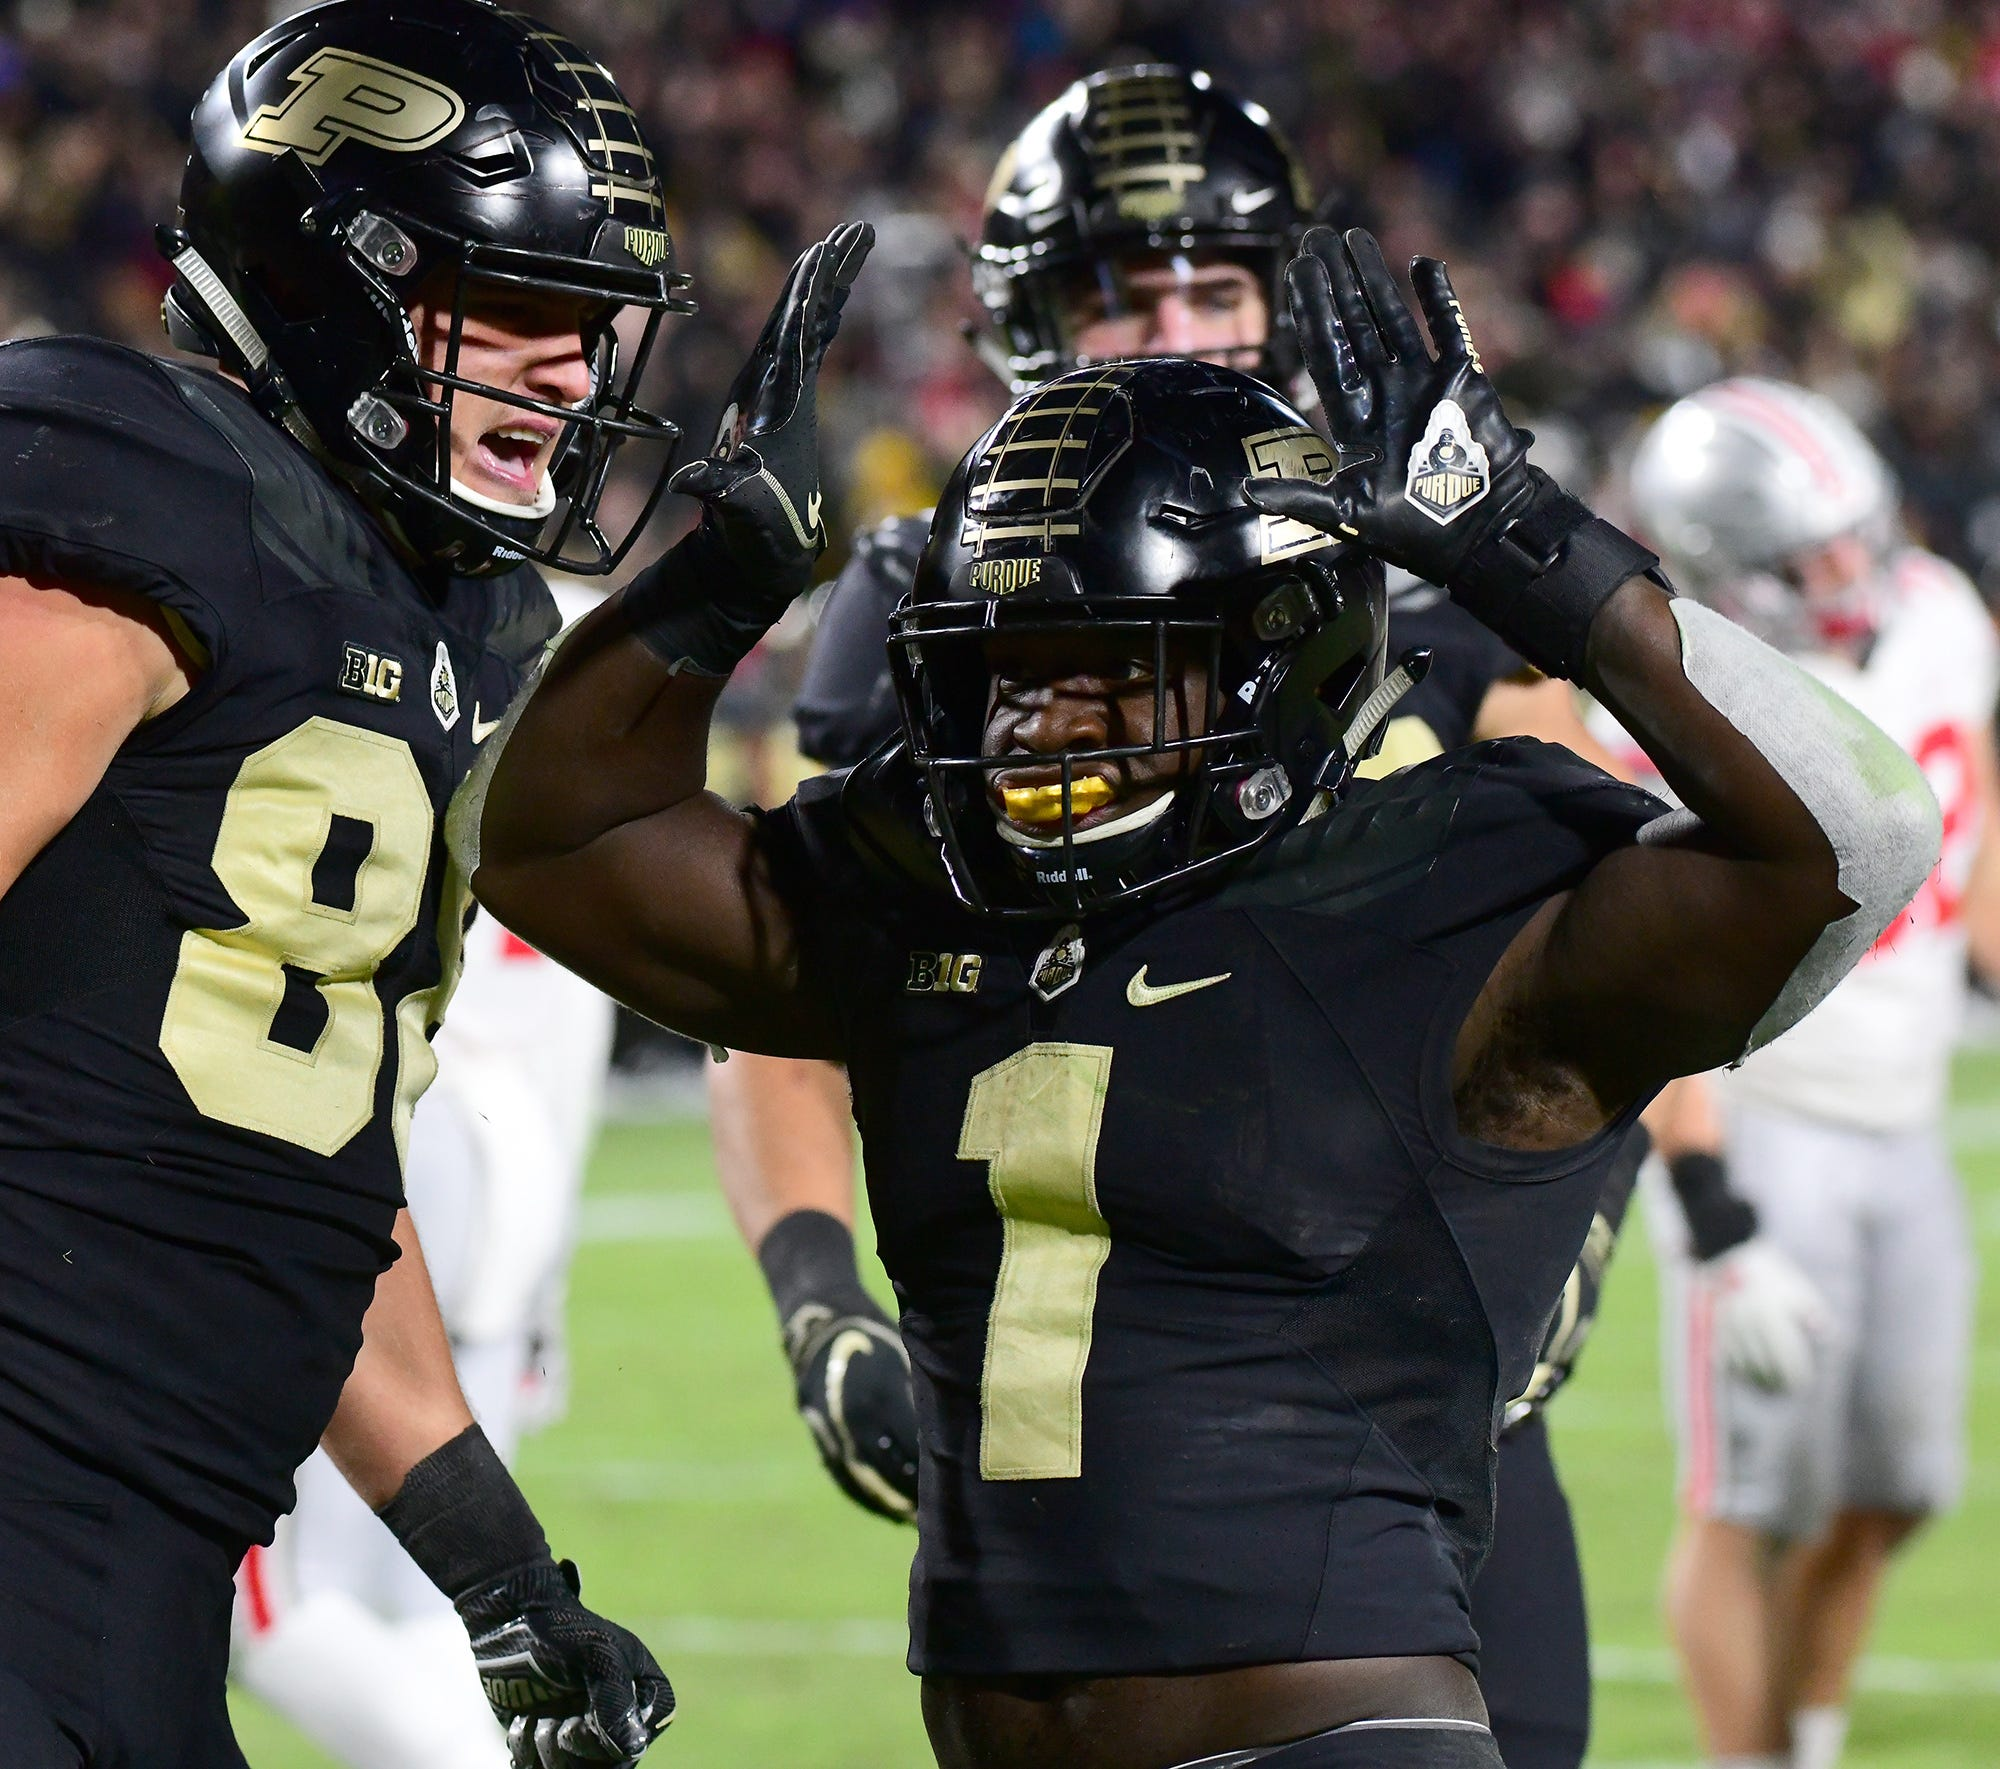 Purdue's D.J. Knox runs for a touchdown as Purdue upsets Ohio State in West Lafayette on Saturday October 20, 2018.